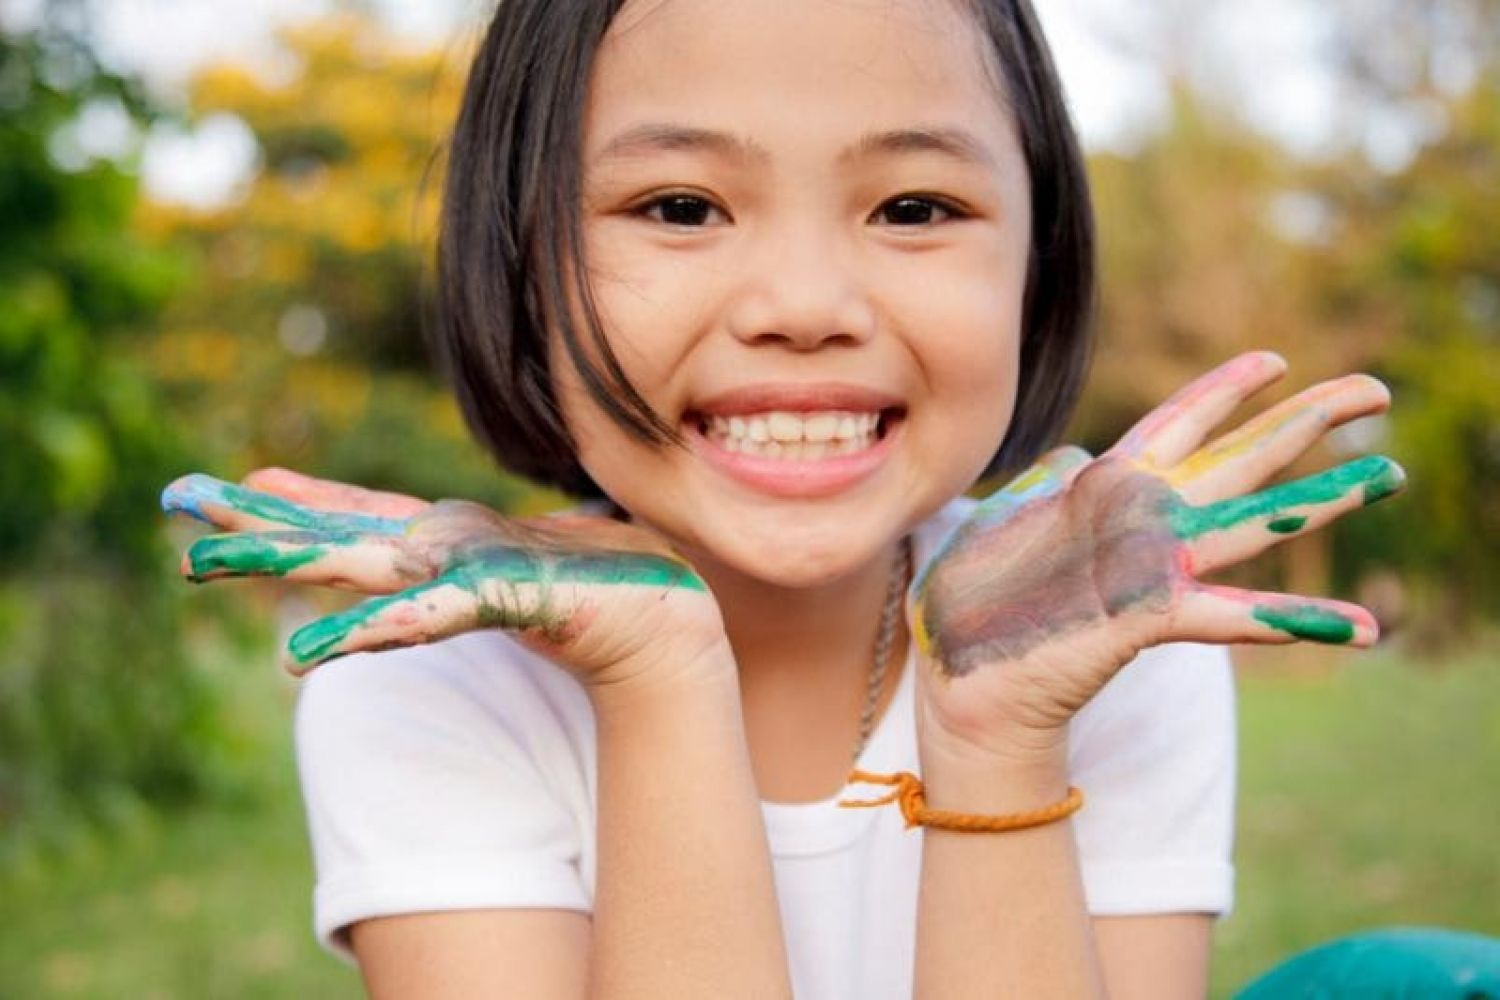 A Surprising Source of Strength: Empowering Kids to Use Creativity Through Challenge